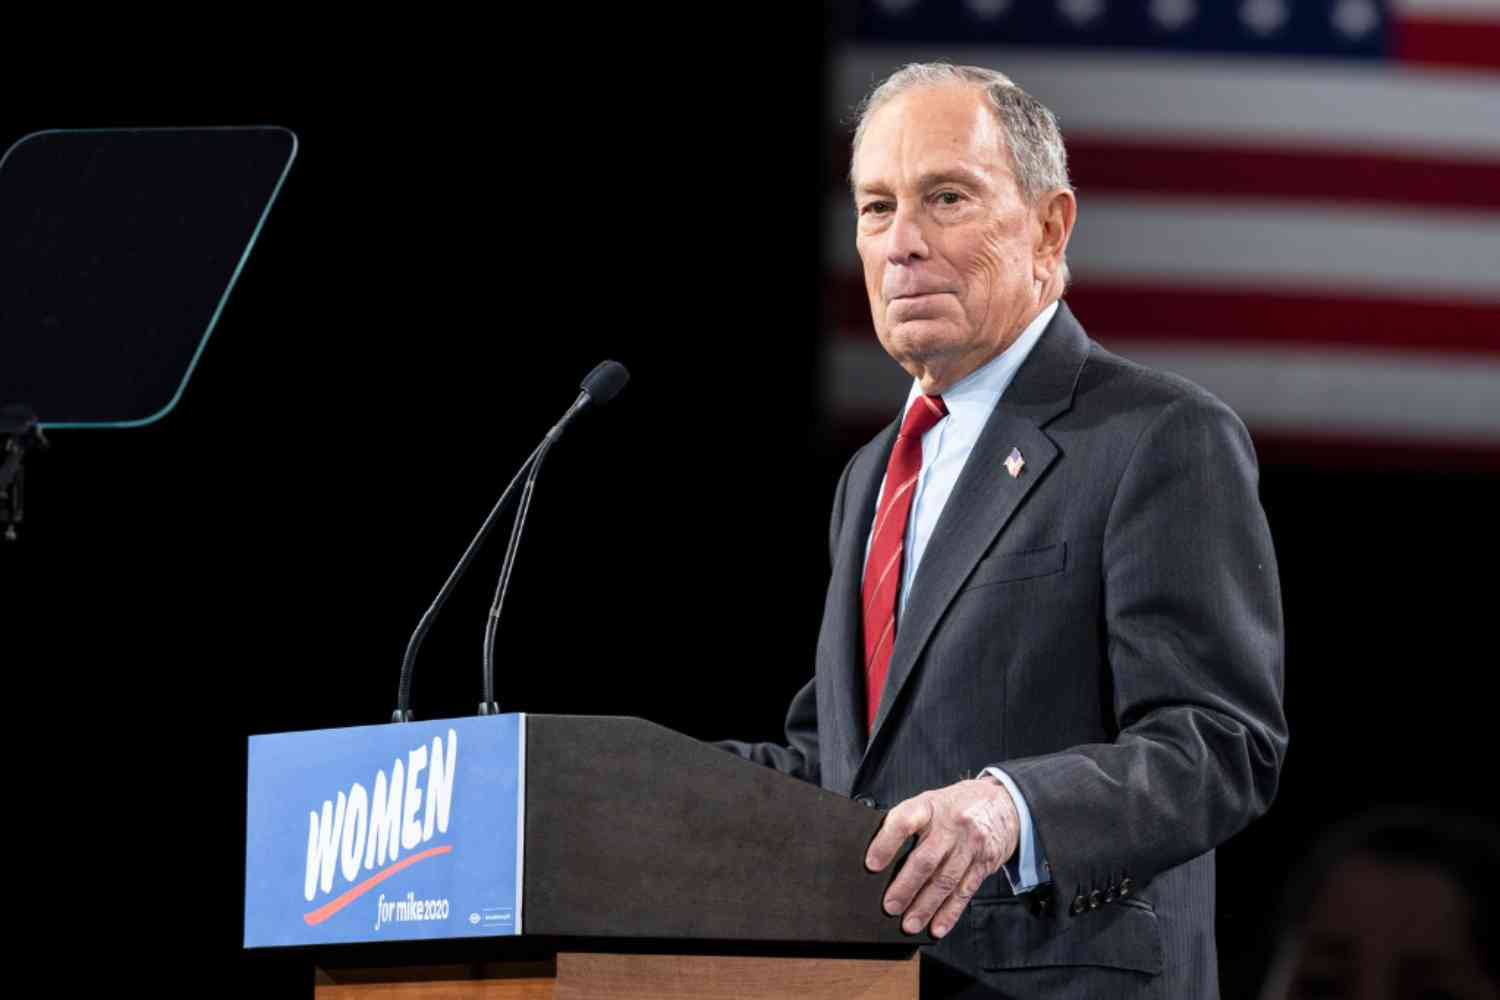 """Michael Bloomberg allegedly told employee to find """"some black"""" to work as nanny"""